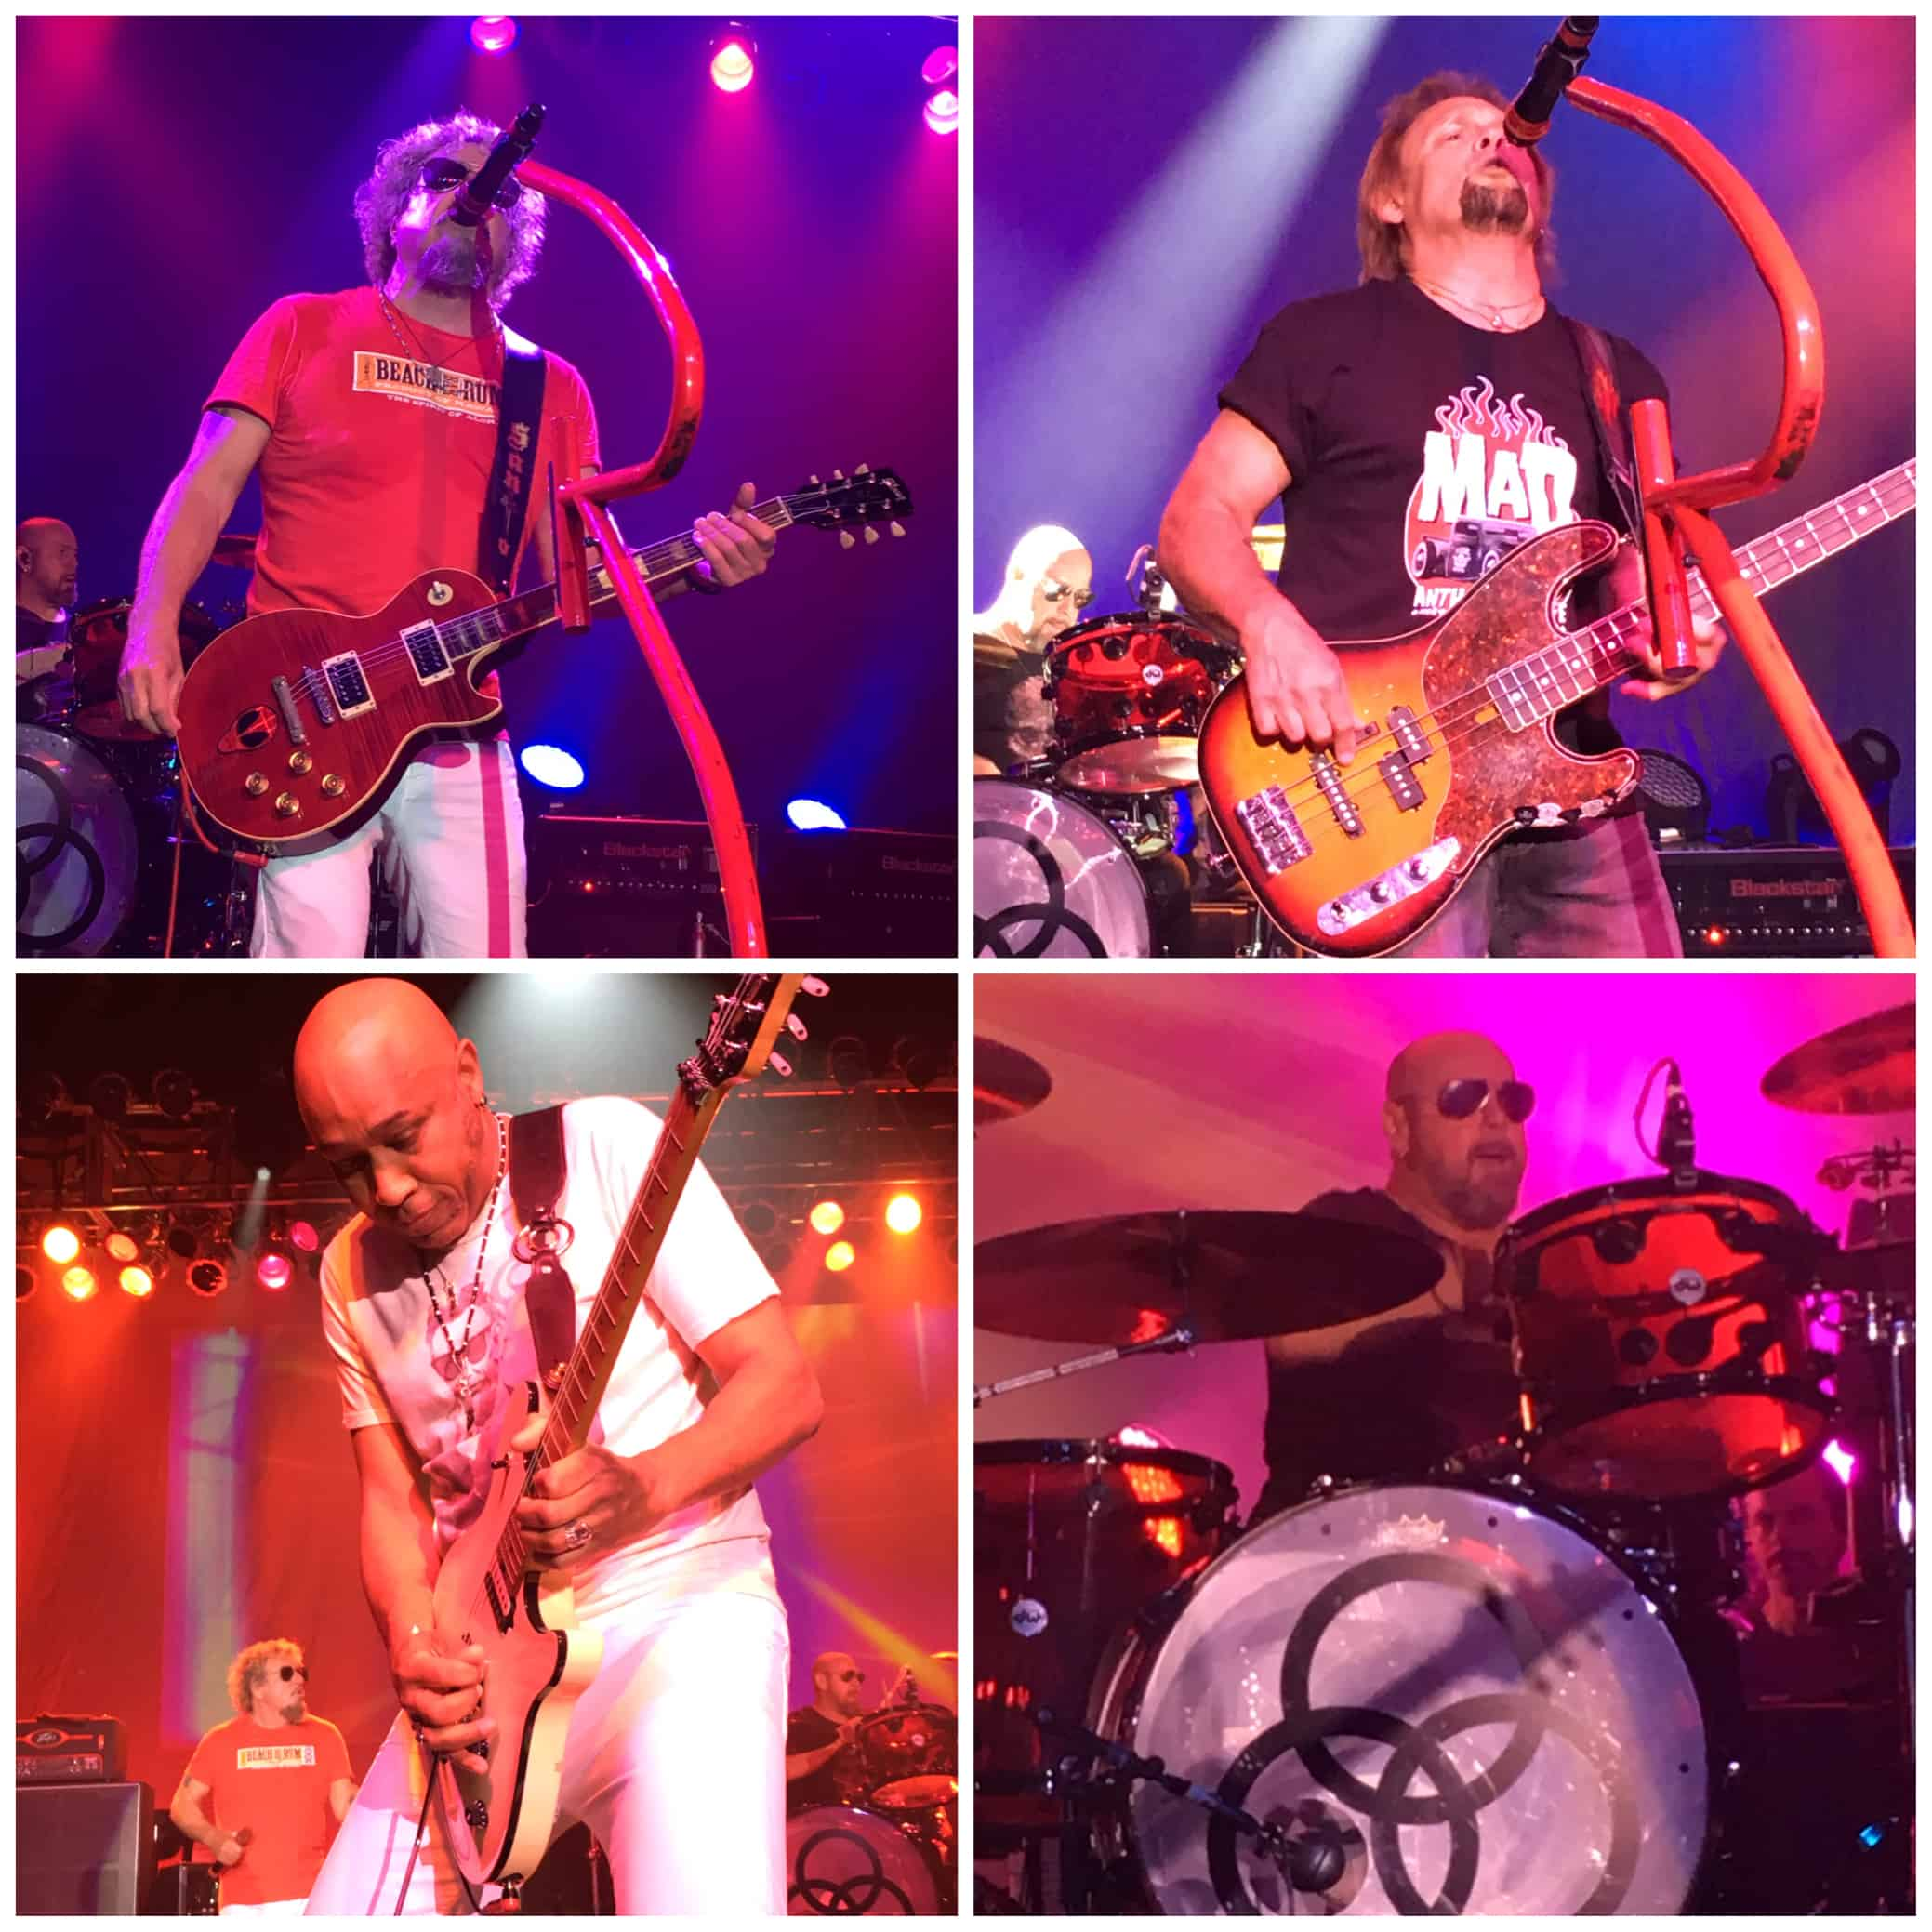 Sammy Hagar and The Circle Live in Cleveland